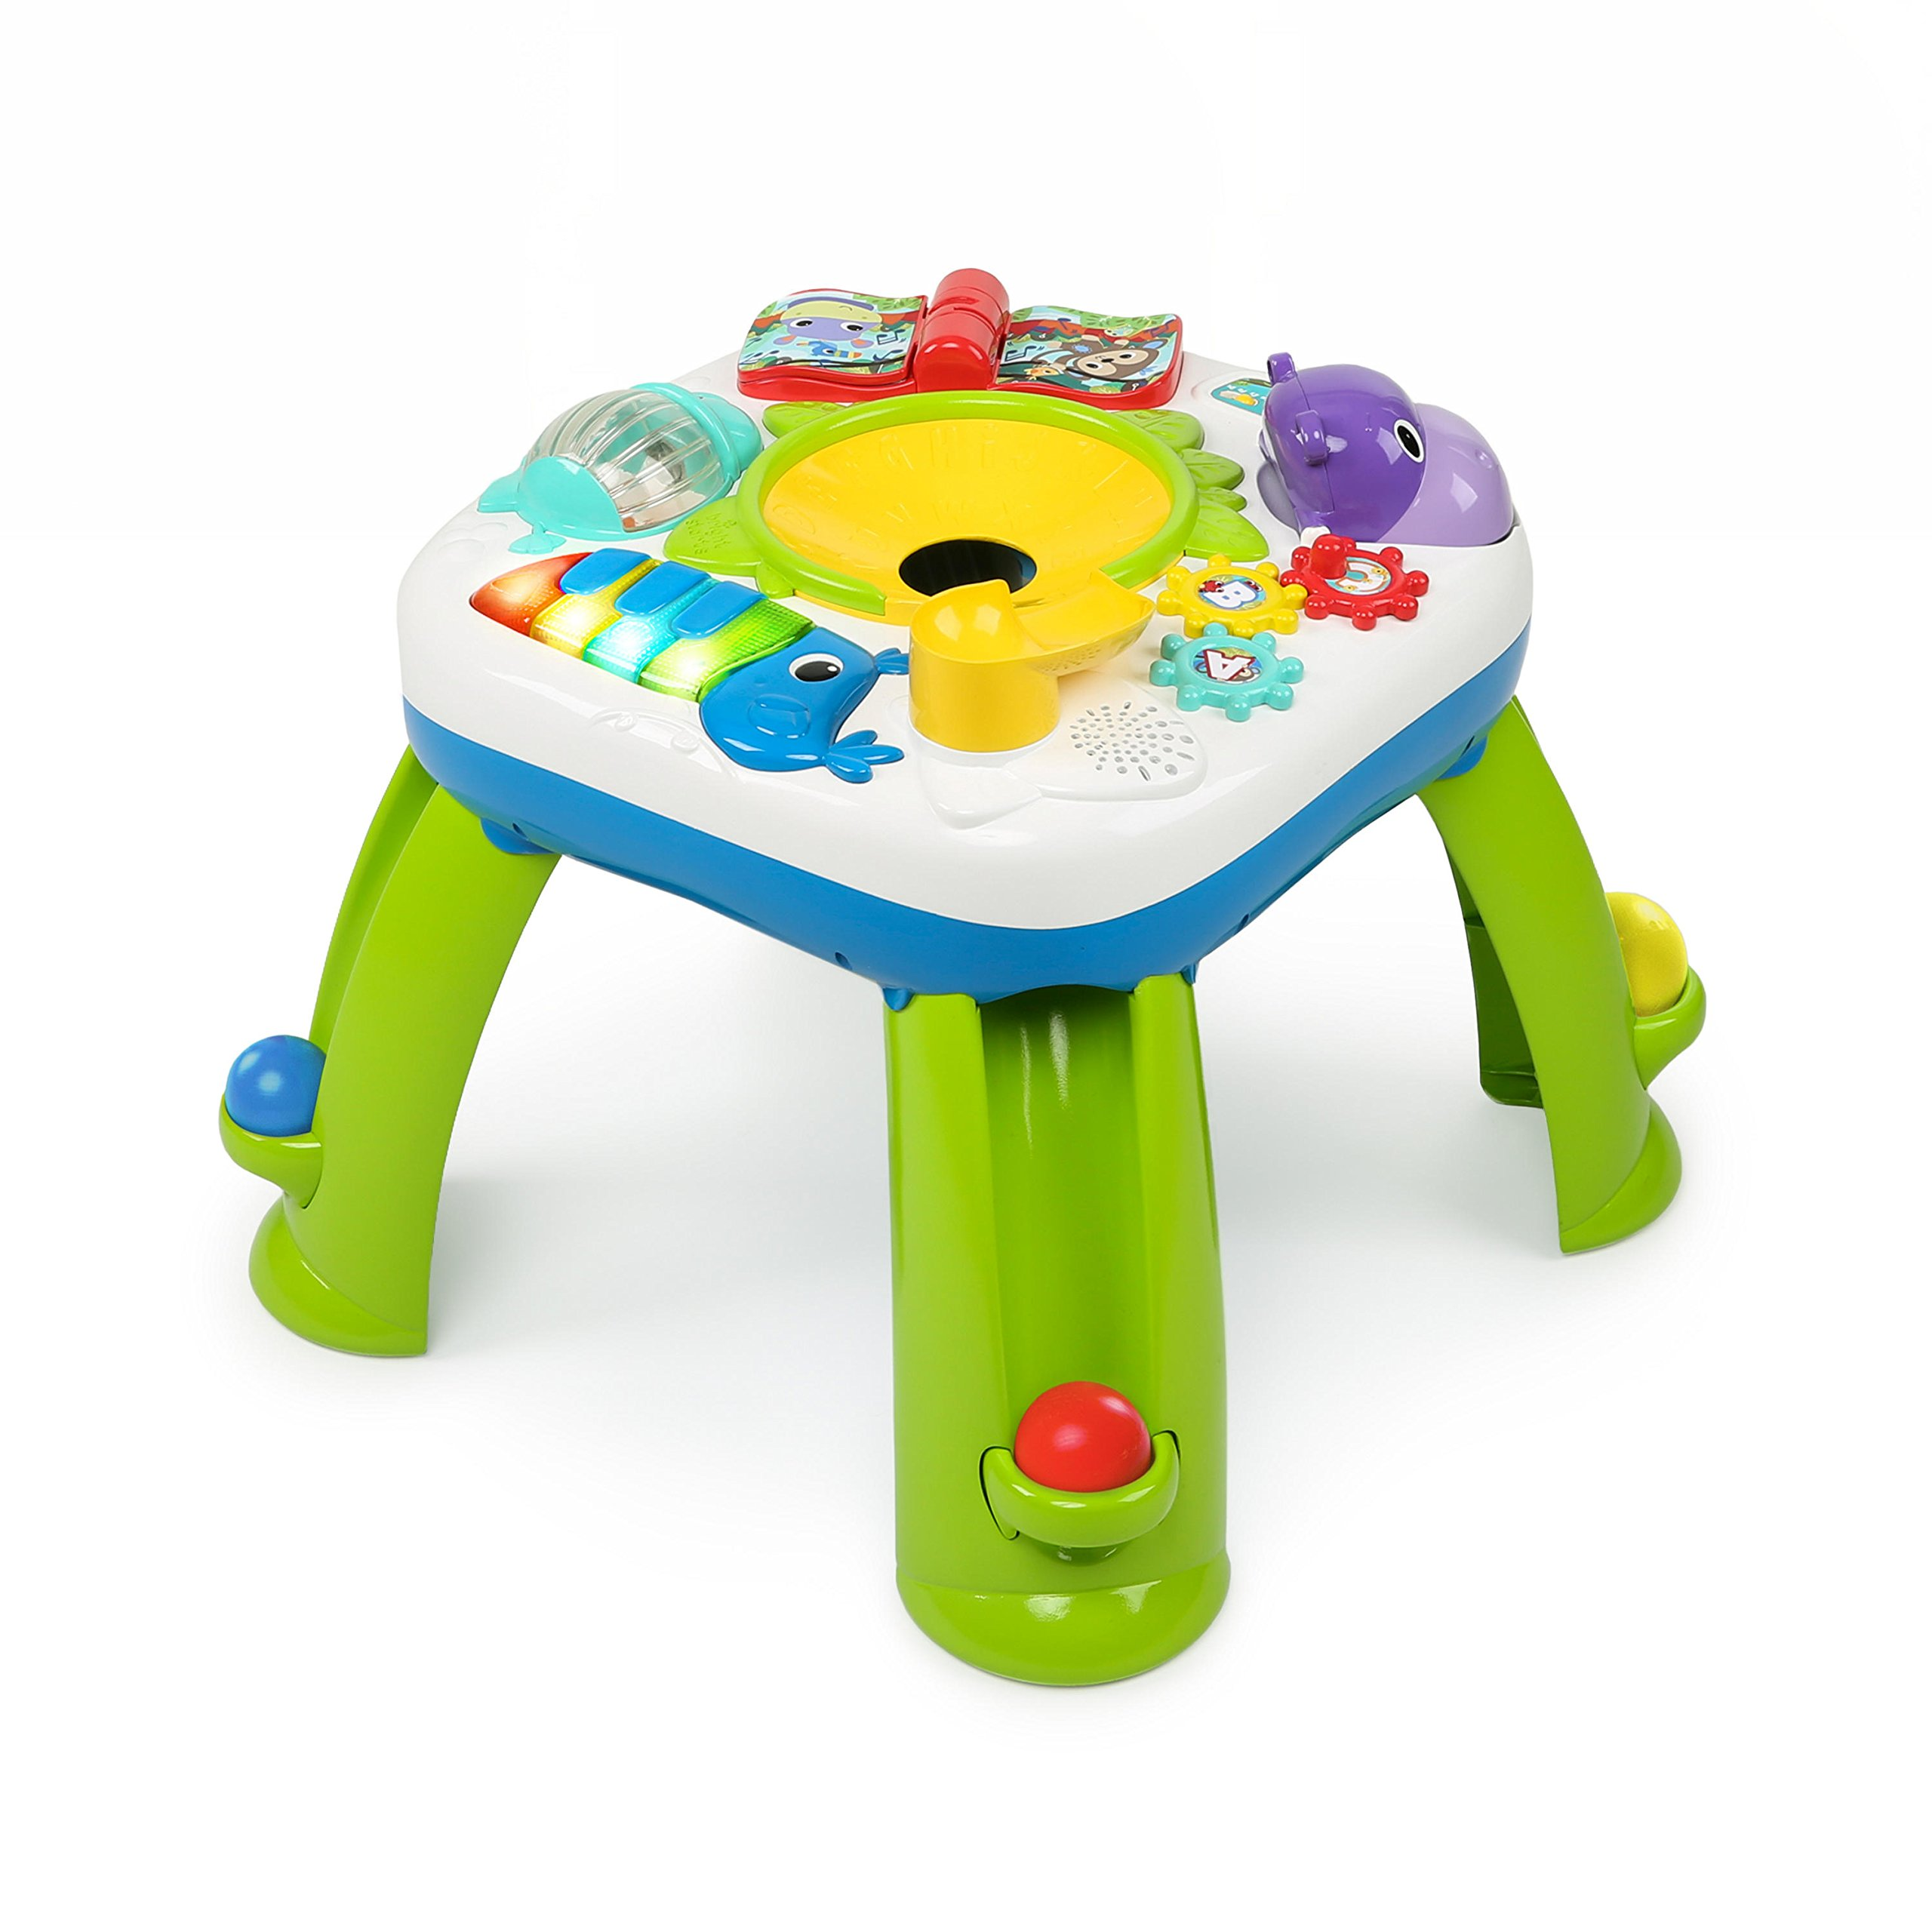 Bright Starts Having a Ball Get Rollin' Activity Table by Bright Starts